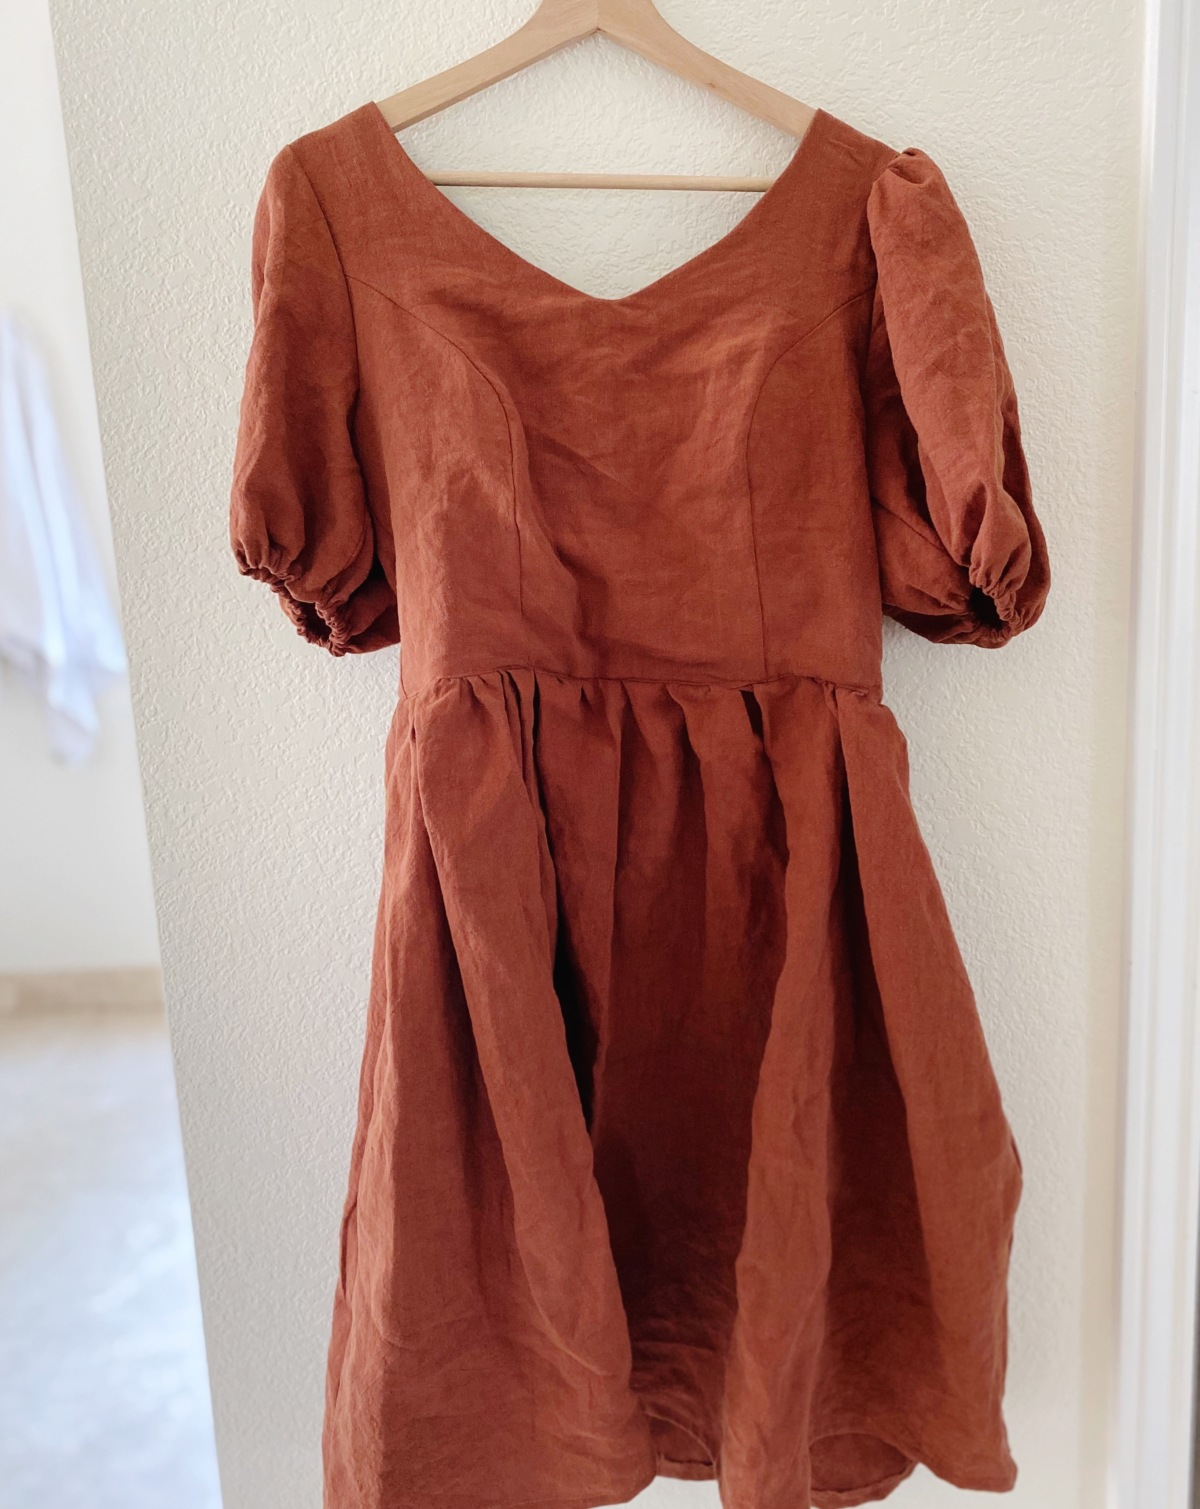 Whit's Reviews/// The LimaDress